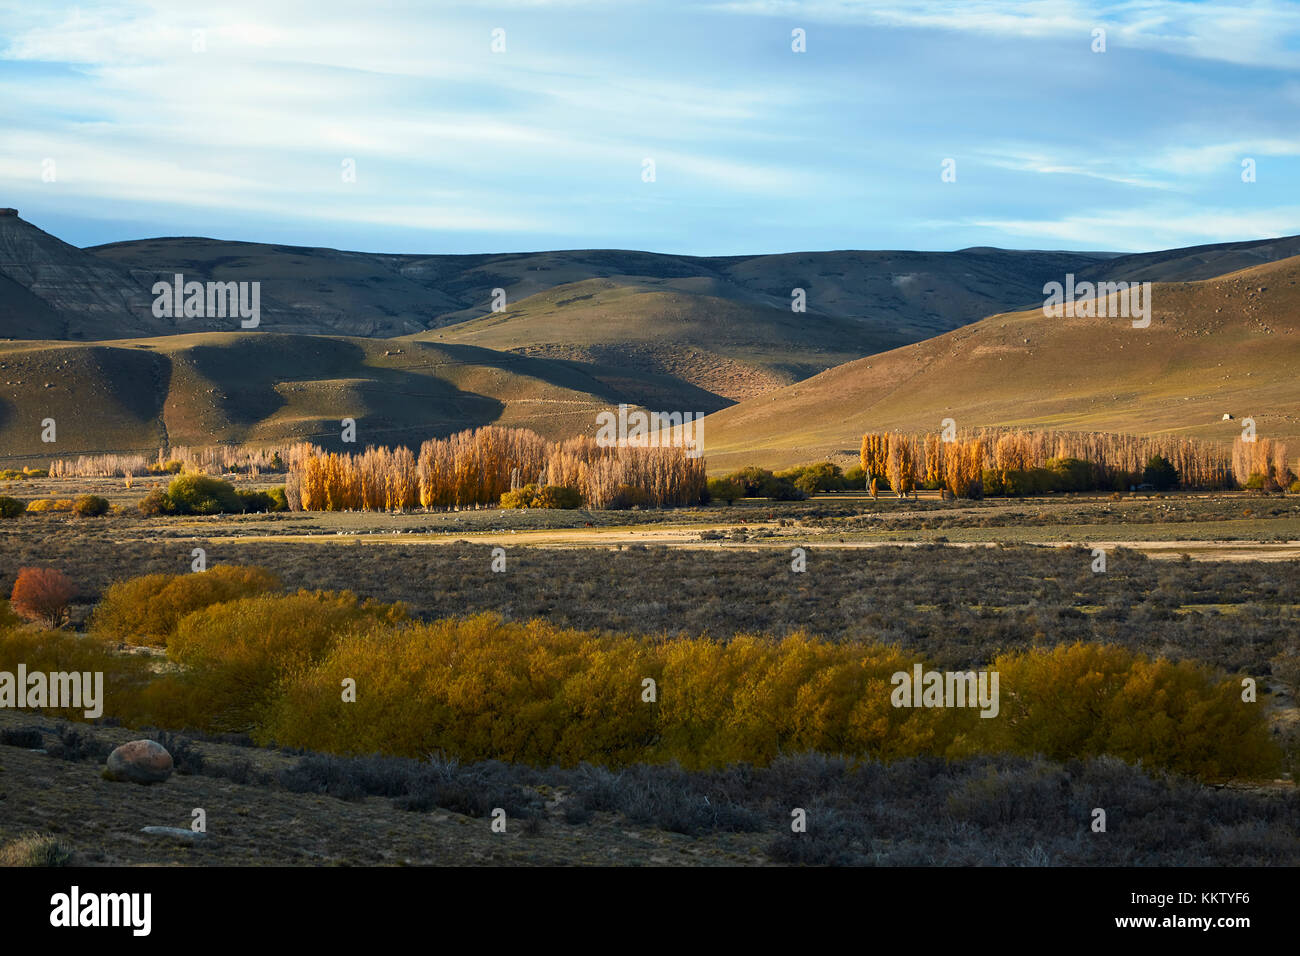 Autumn Trees near El Calafate, Patagonia, Argentina, South America - Stock Image